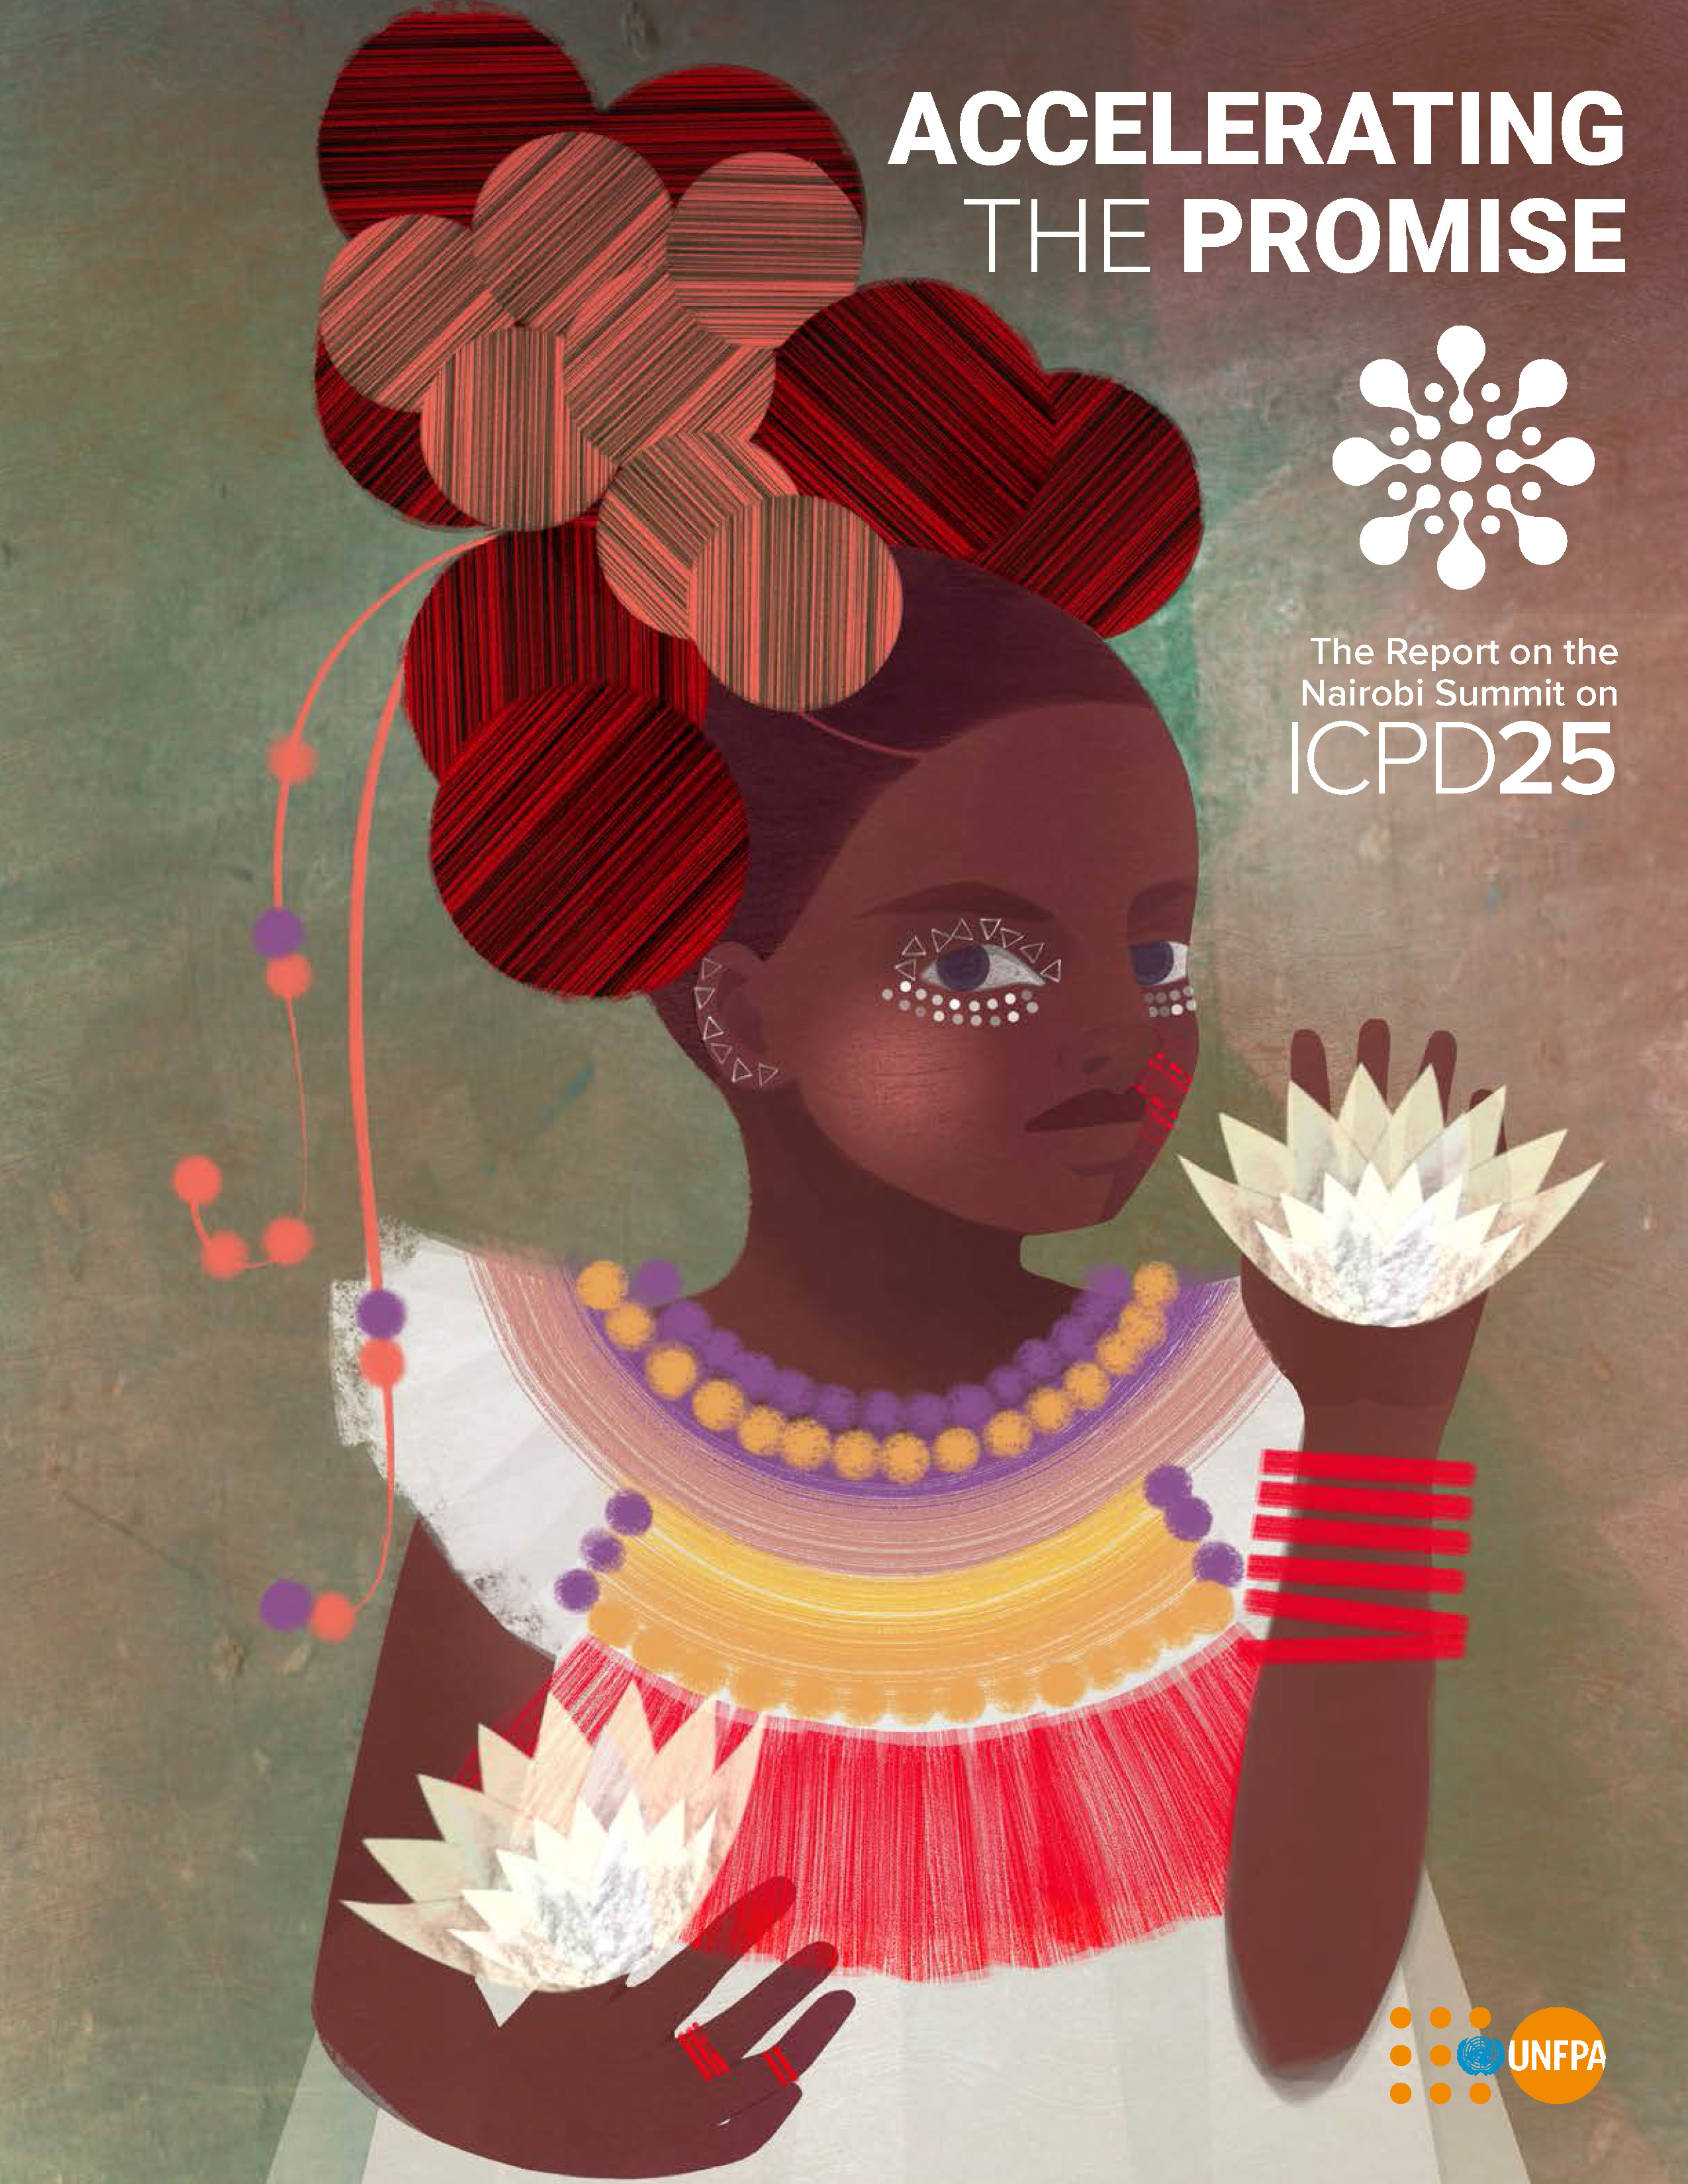 Accelerating the Promise: The Report on the Nairobi Summit on ICPD25